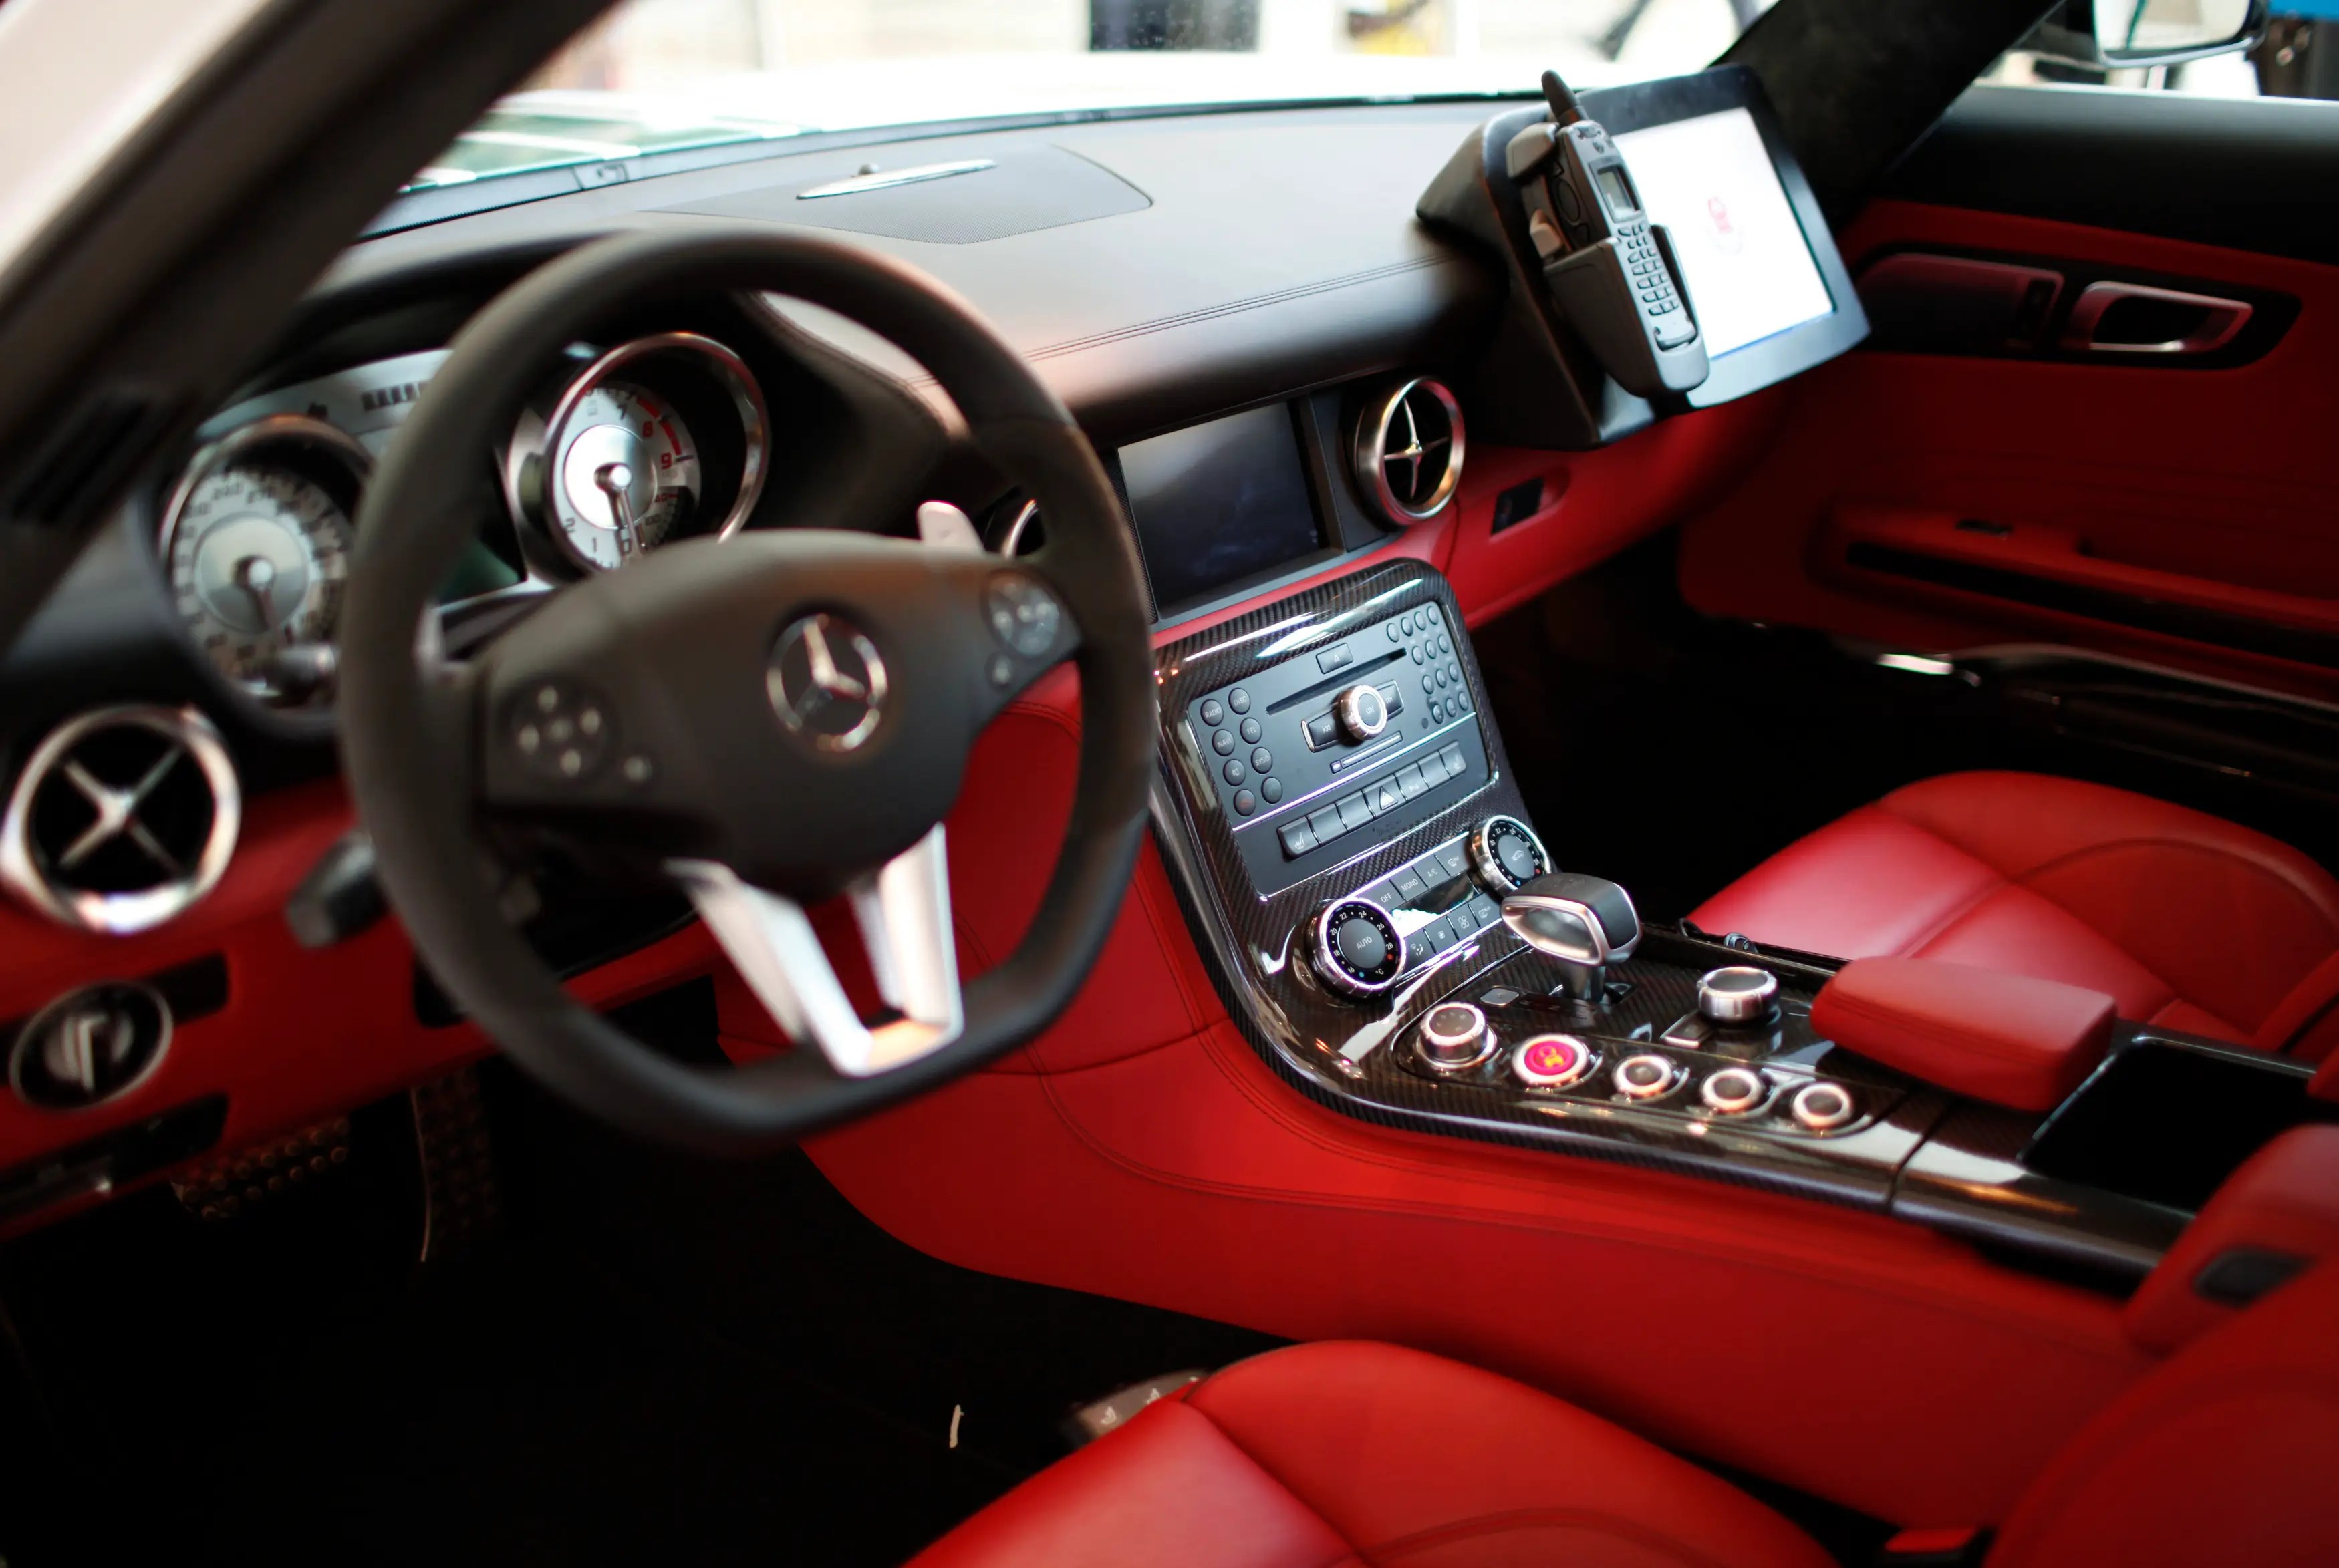 Red leather makes for a nicer interior that what most cops get to enjoy.